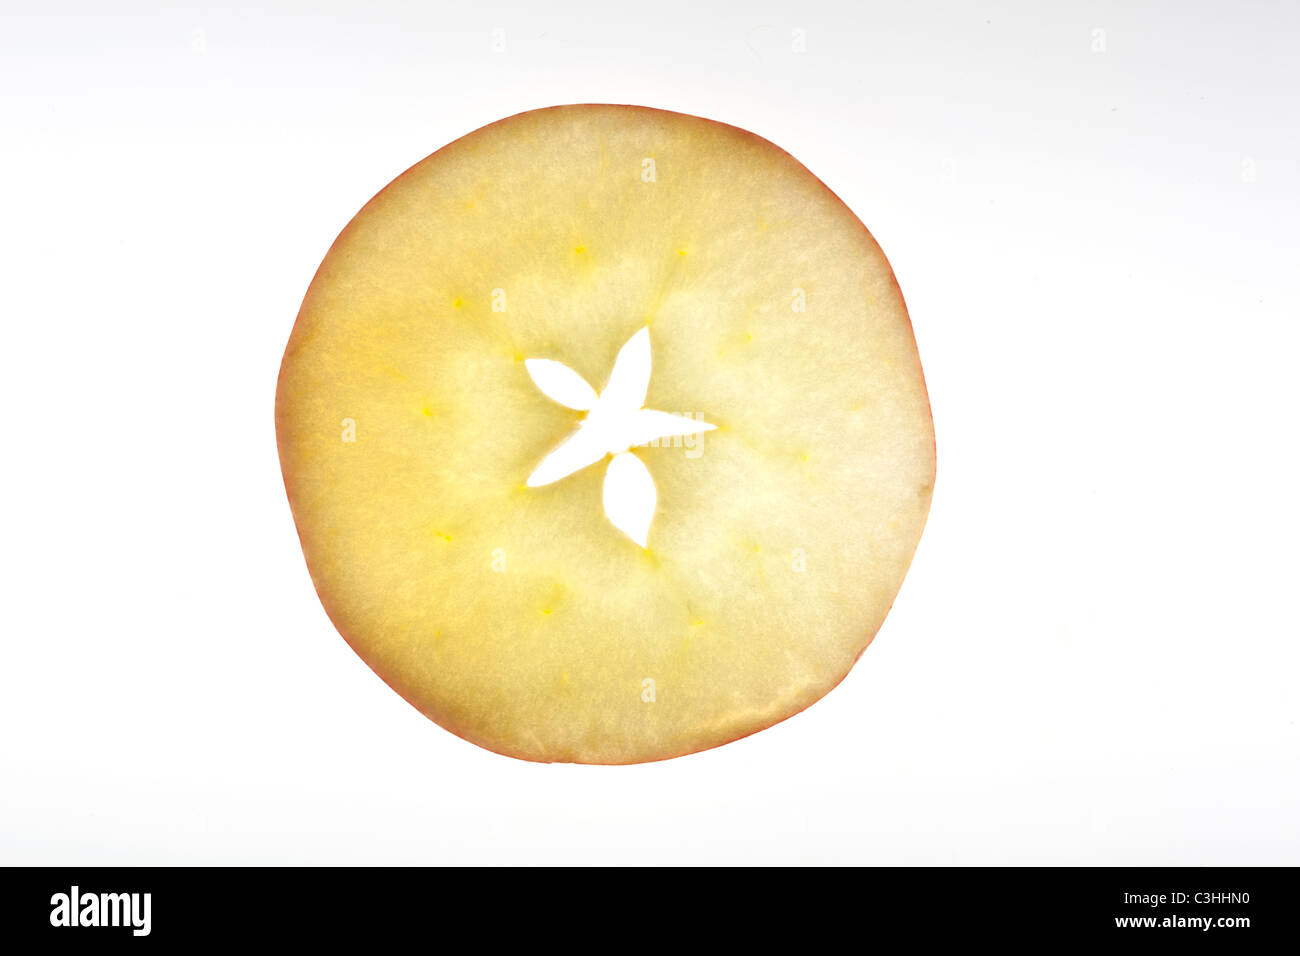 round slice of apple - Stock Image